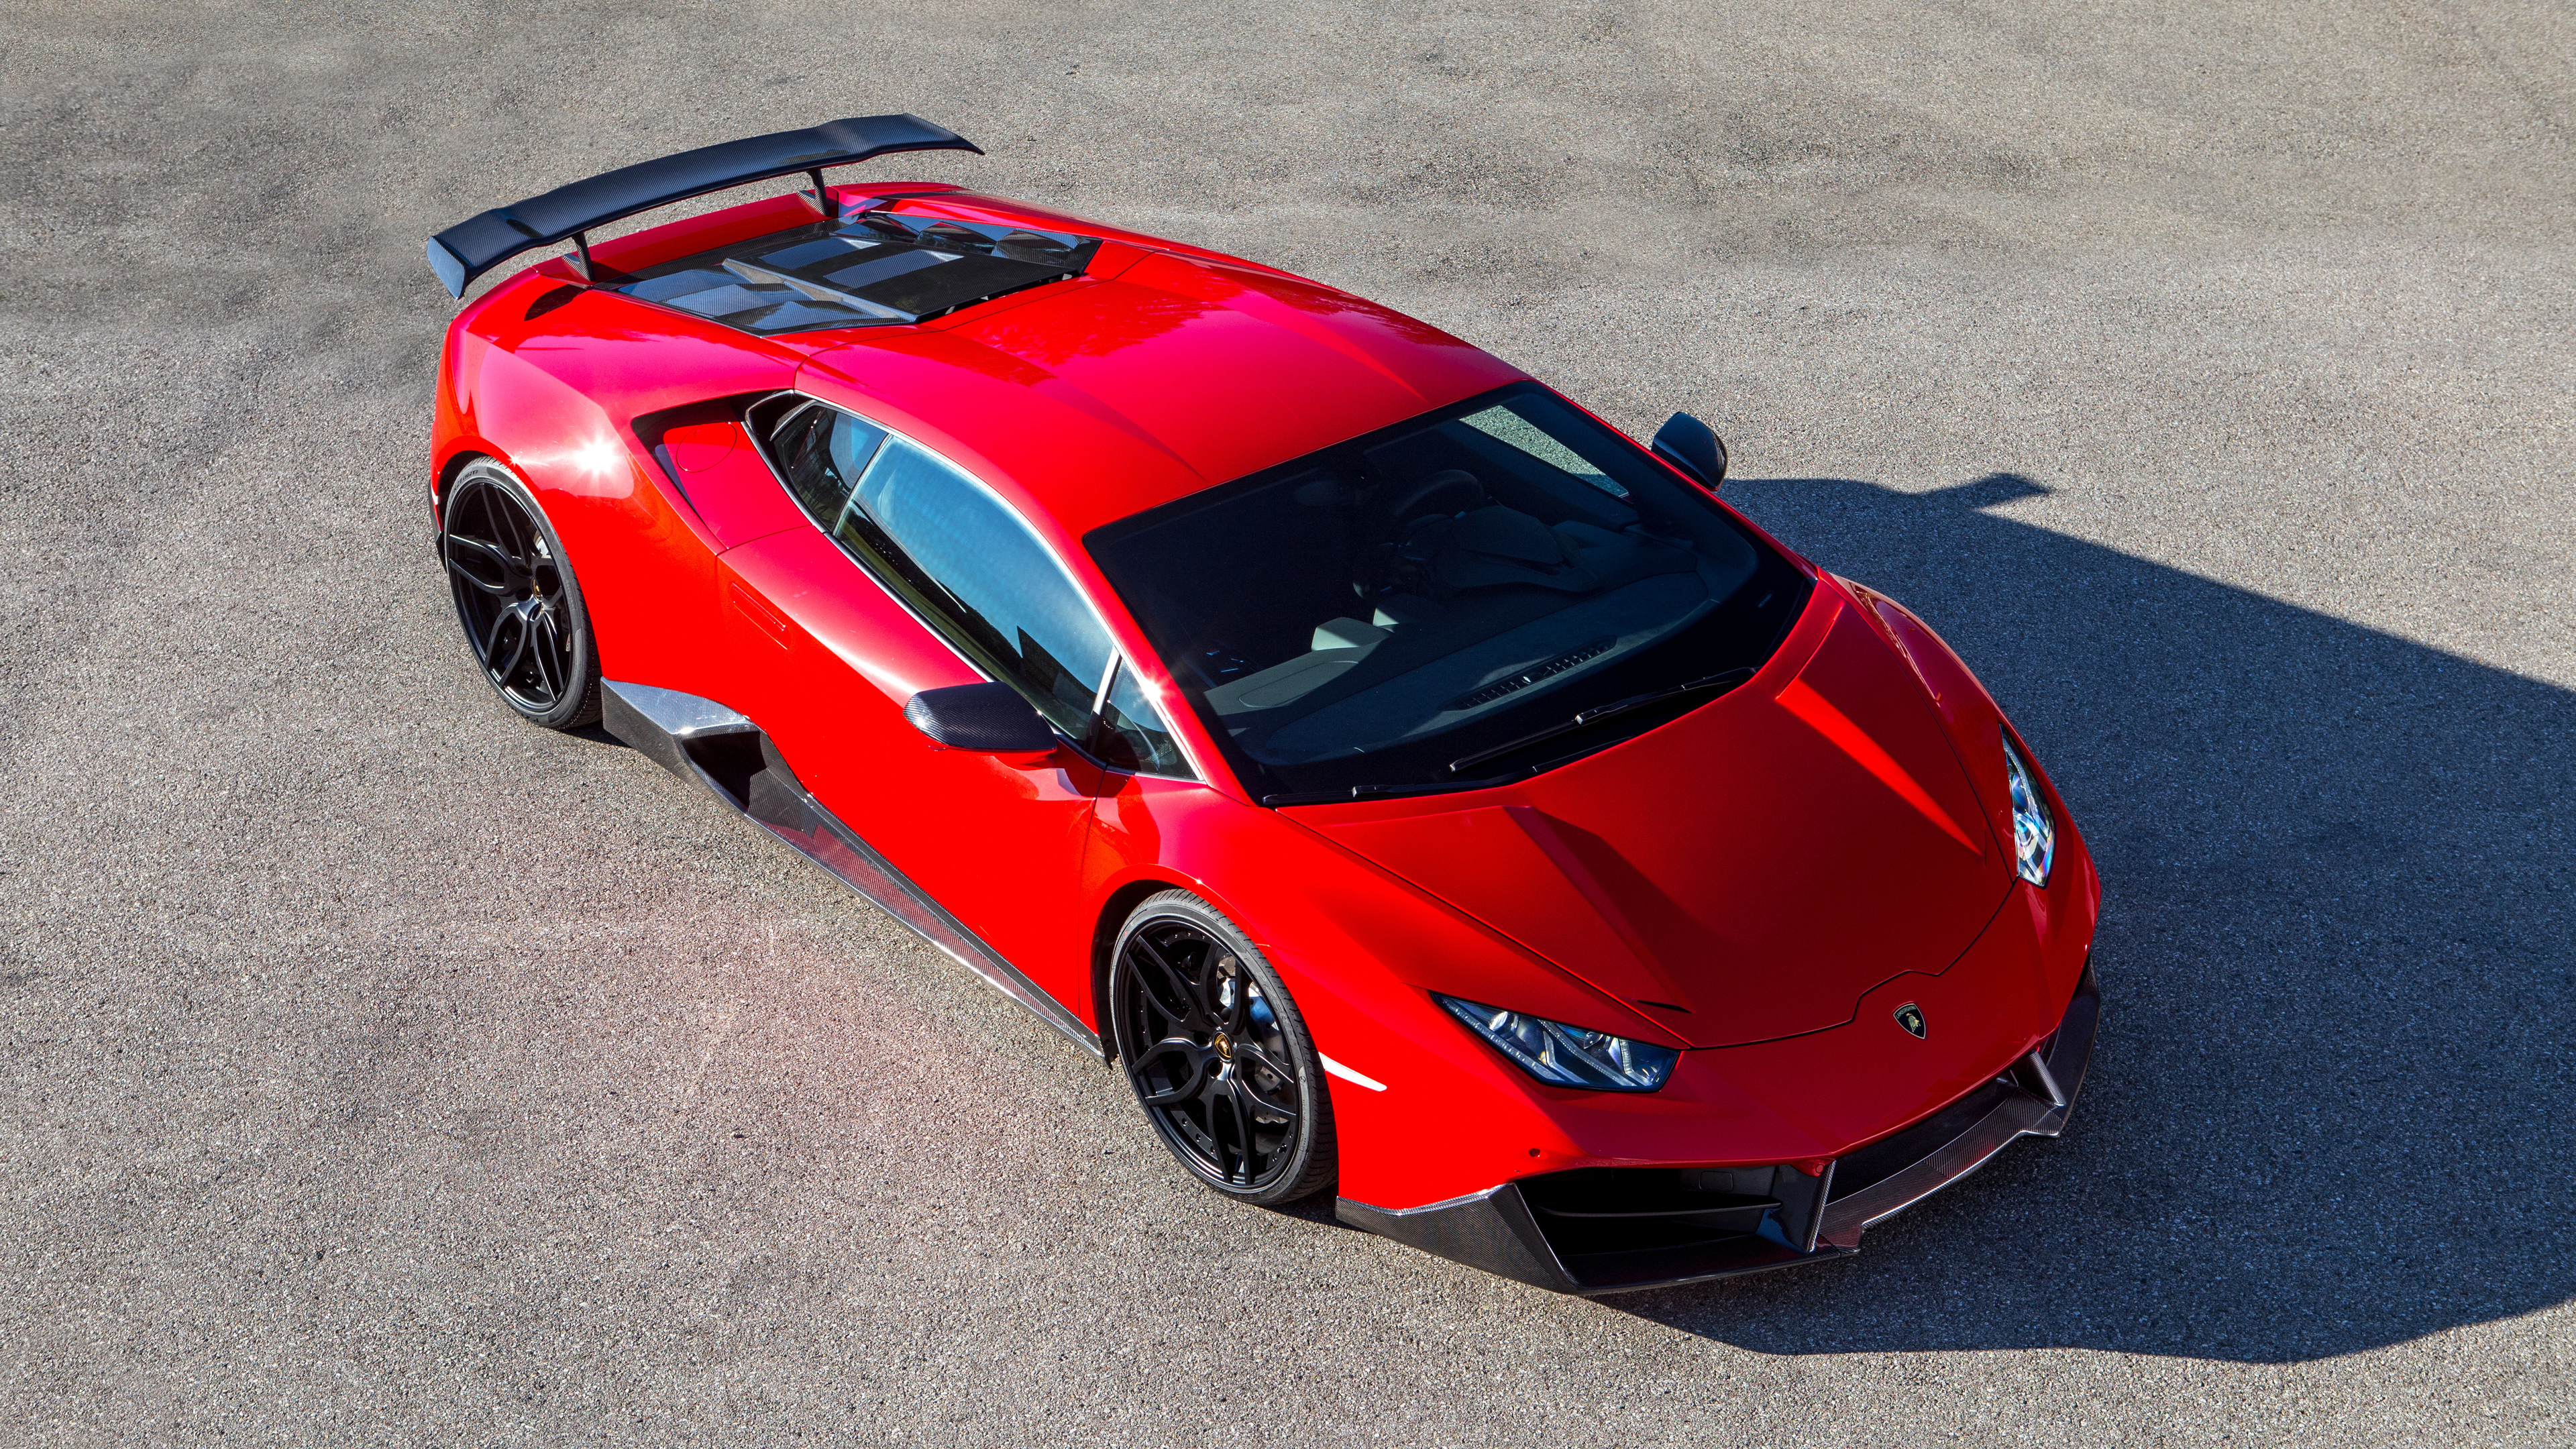 2018 novitec torado lamborghini huracan rwd front view 1539112591 - 2018 Novitec Torado Lamborghini Huracan RWD Front View - novitec wallpapers, lamborghini wallpapers, lamborghini huracan wallpapers, hd-wallpapers, cars wallpapers, 5k wallpapers, 4k-wallpapers